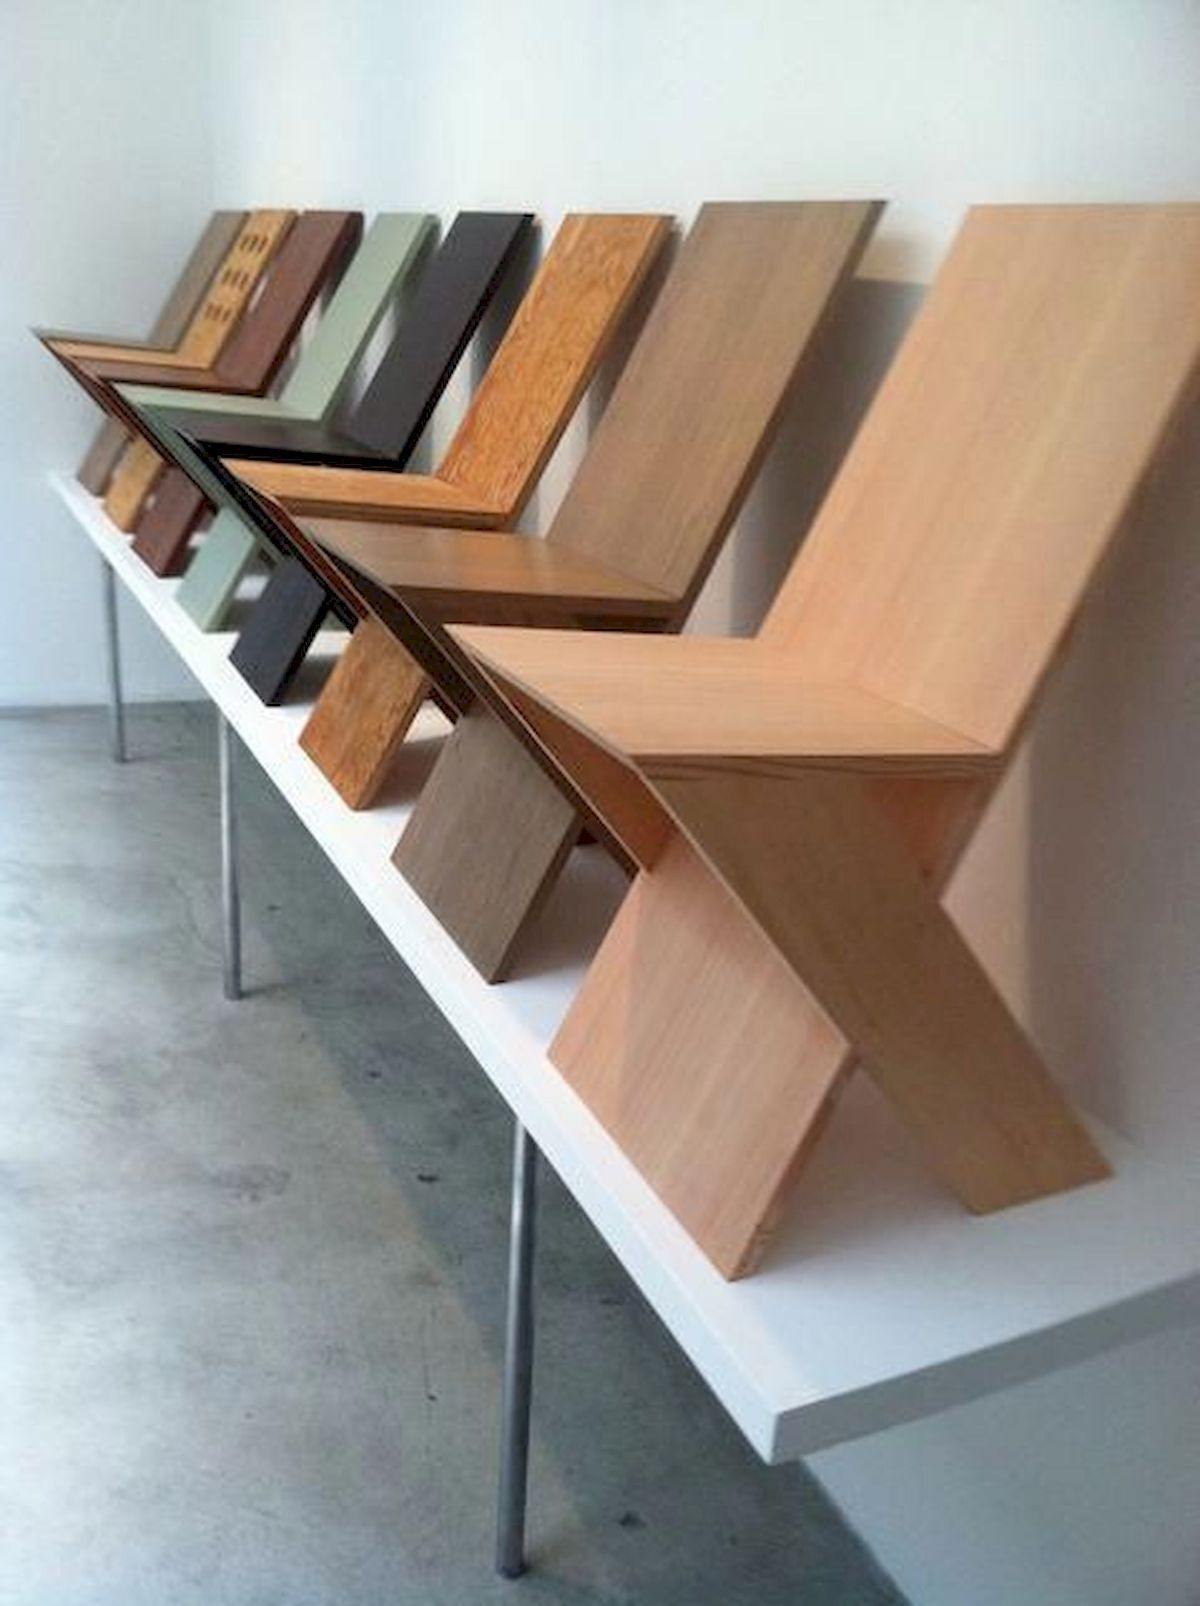 60 Fantastic Diy Projects Wood Furniture Ideas Wood Furniture Plans Furniture Projects Diy Furniture